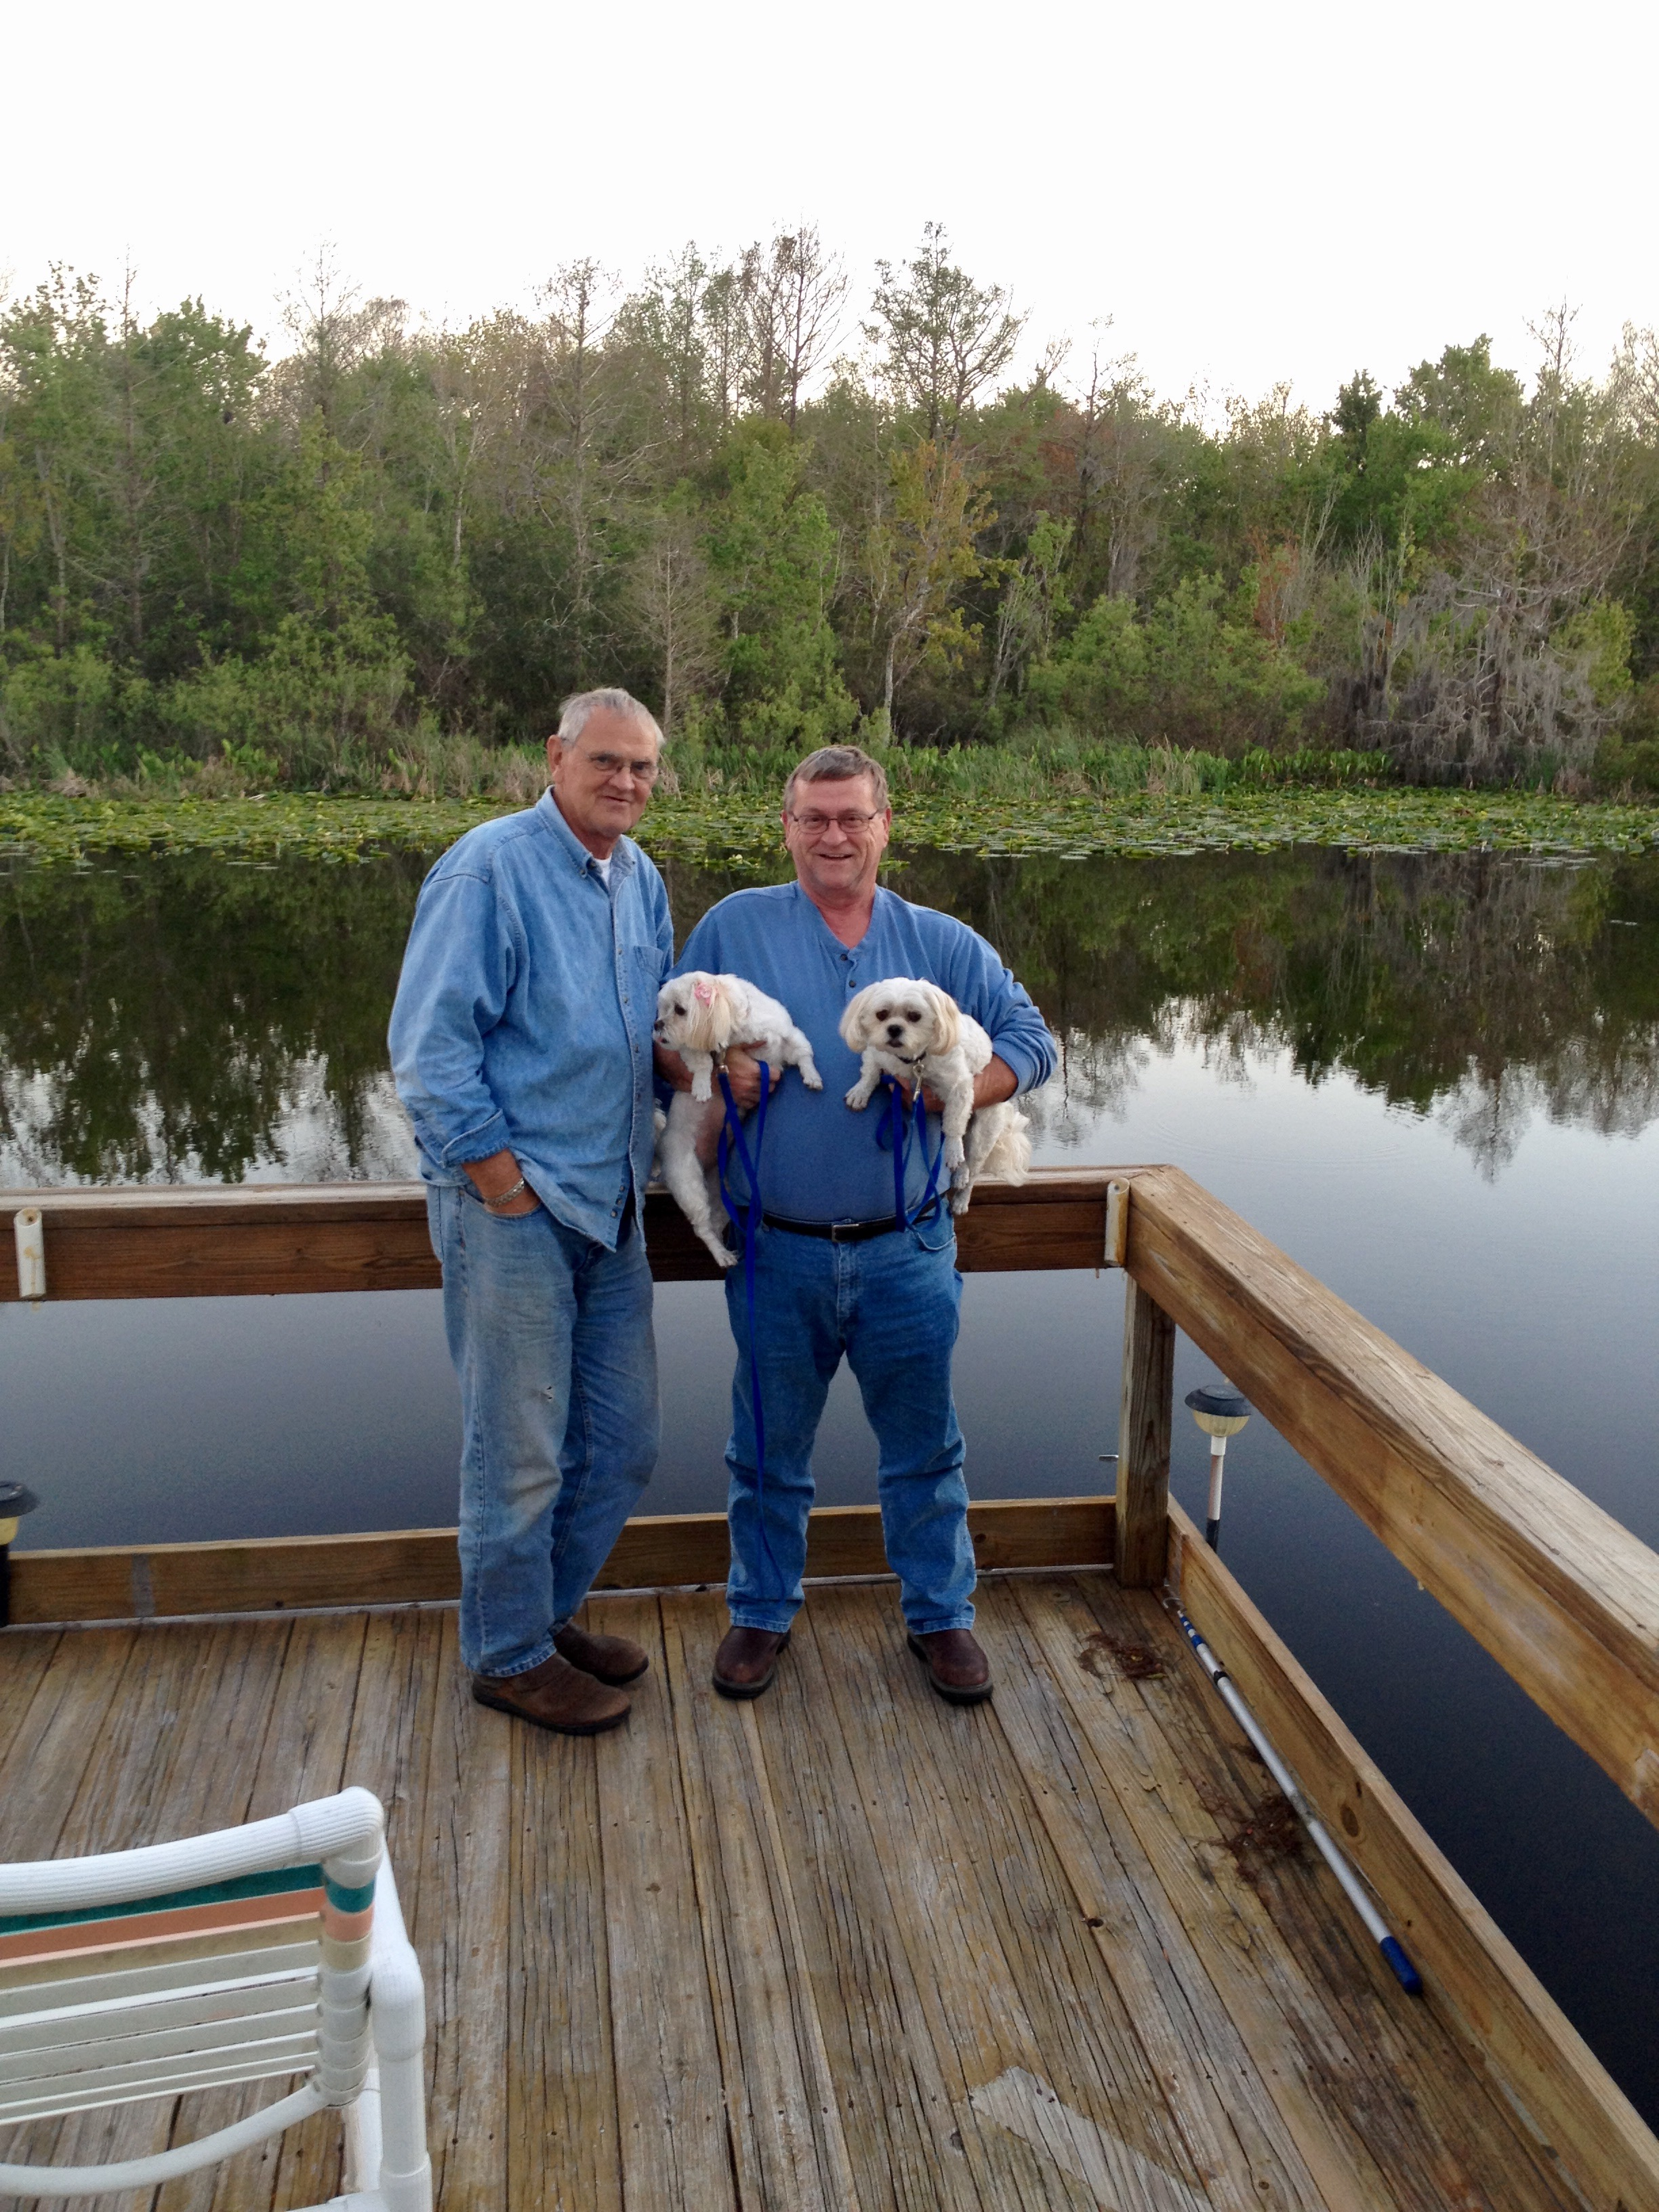 Joe and I enjoyed trying  trying to catch fish  off this dock  while Lori and  Pat watched and laughed at us. We have enjoyed many good times Joe but those times are nothing compared to the times we will have when we meet with next time. We love you buddy.